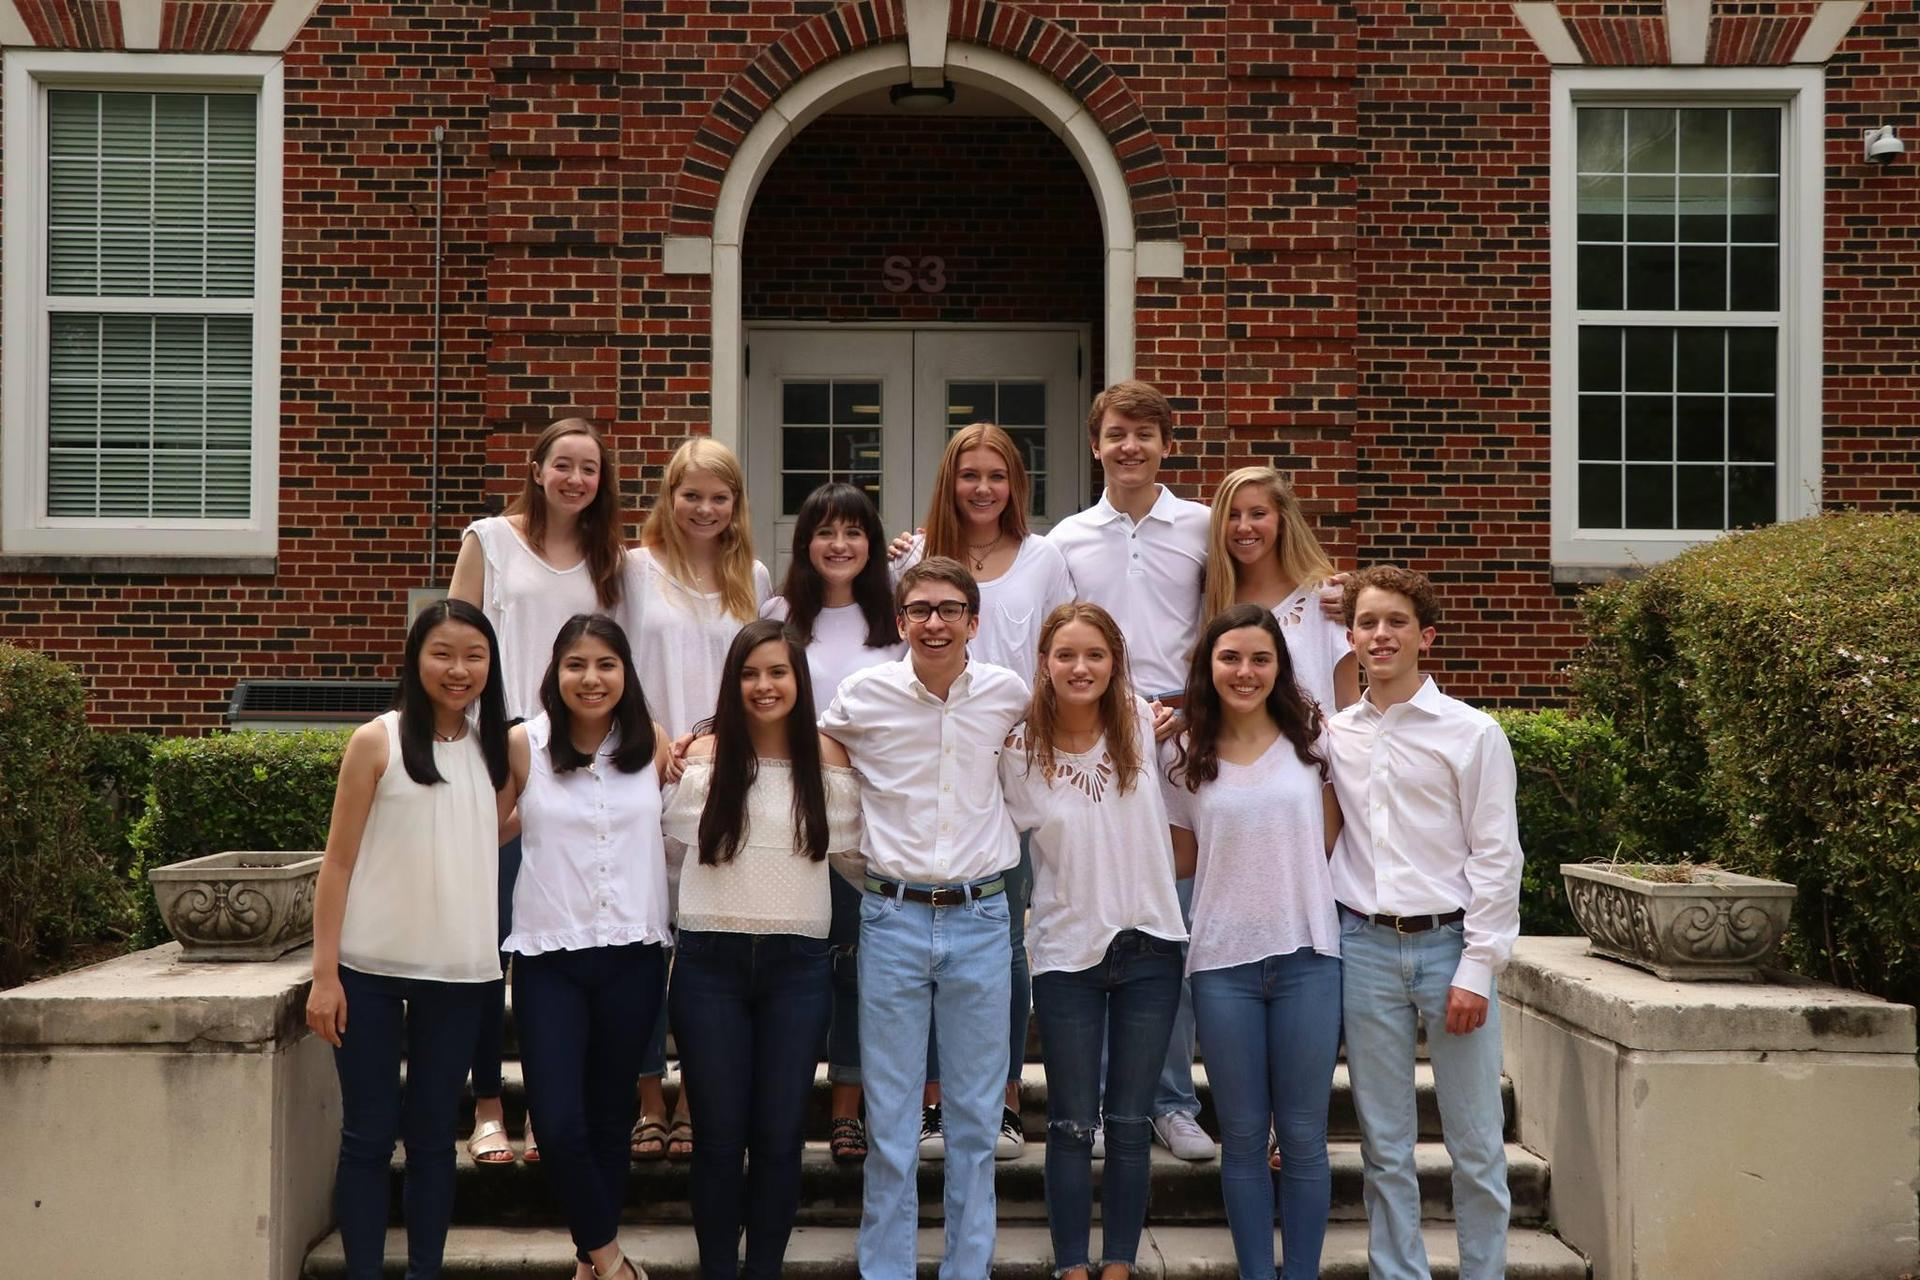 HPHS student council group photo.